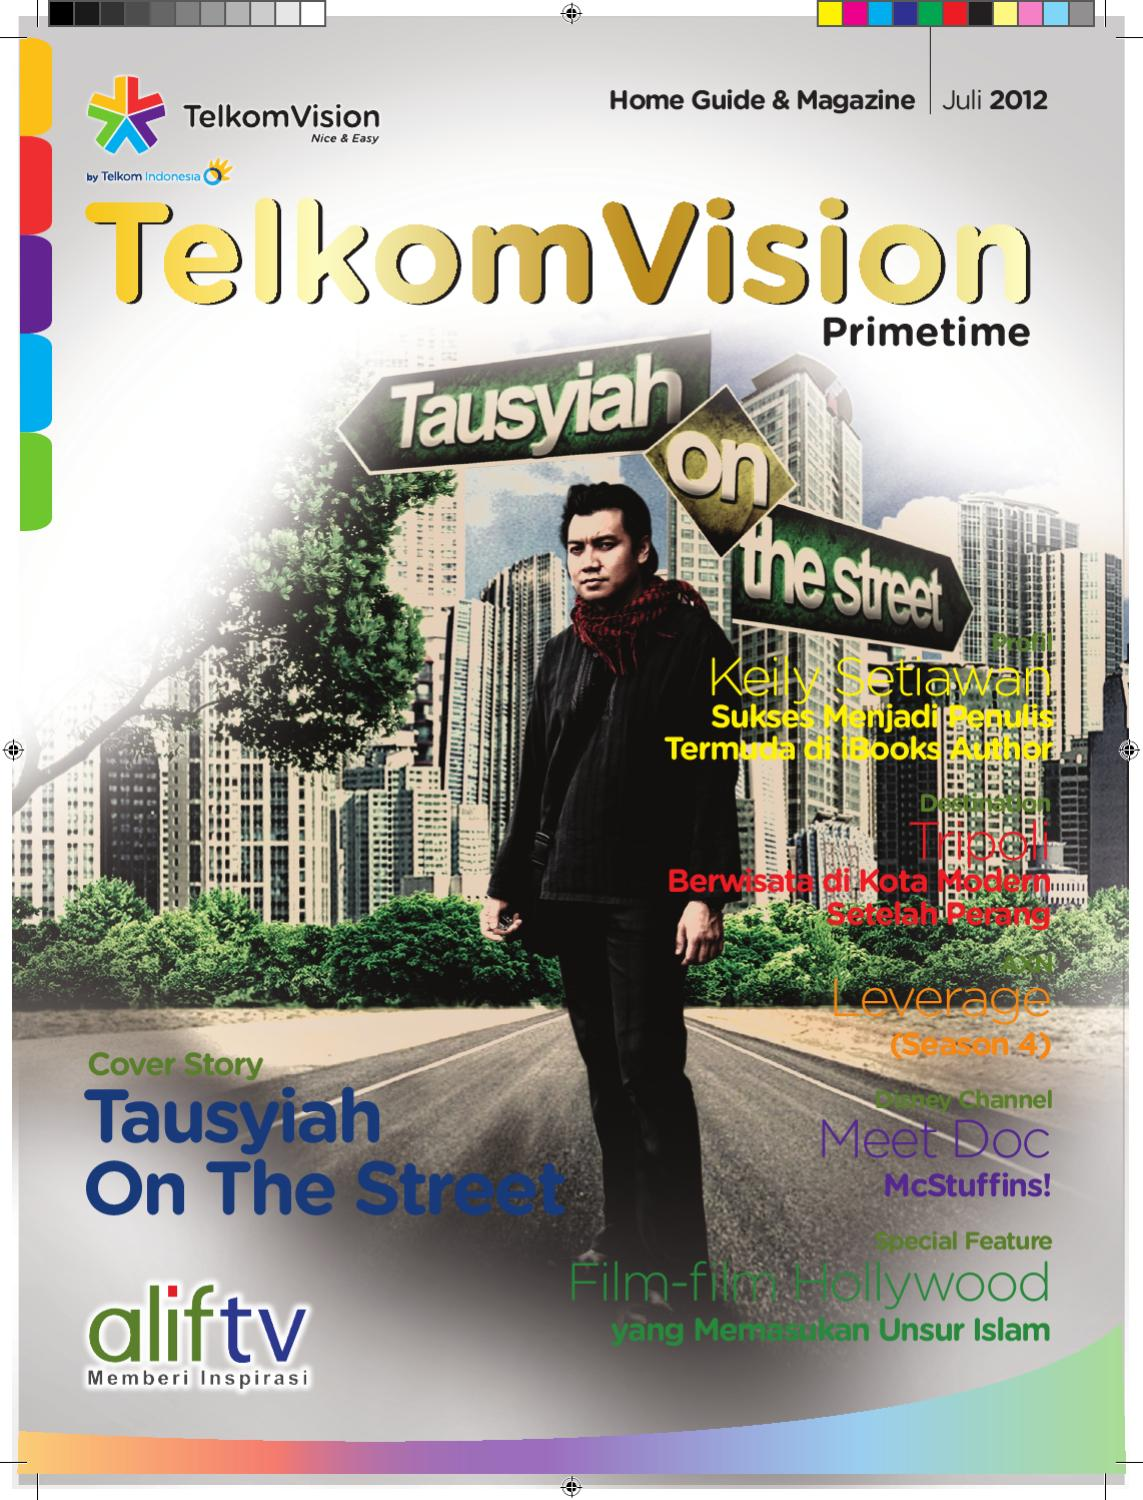 Januari 2012 - Prime Time TelkomVision by Indonusa Telemedia - issuu